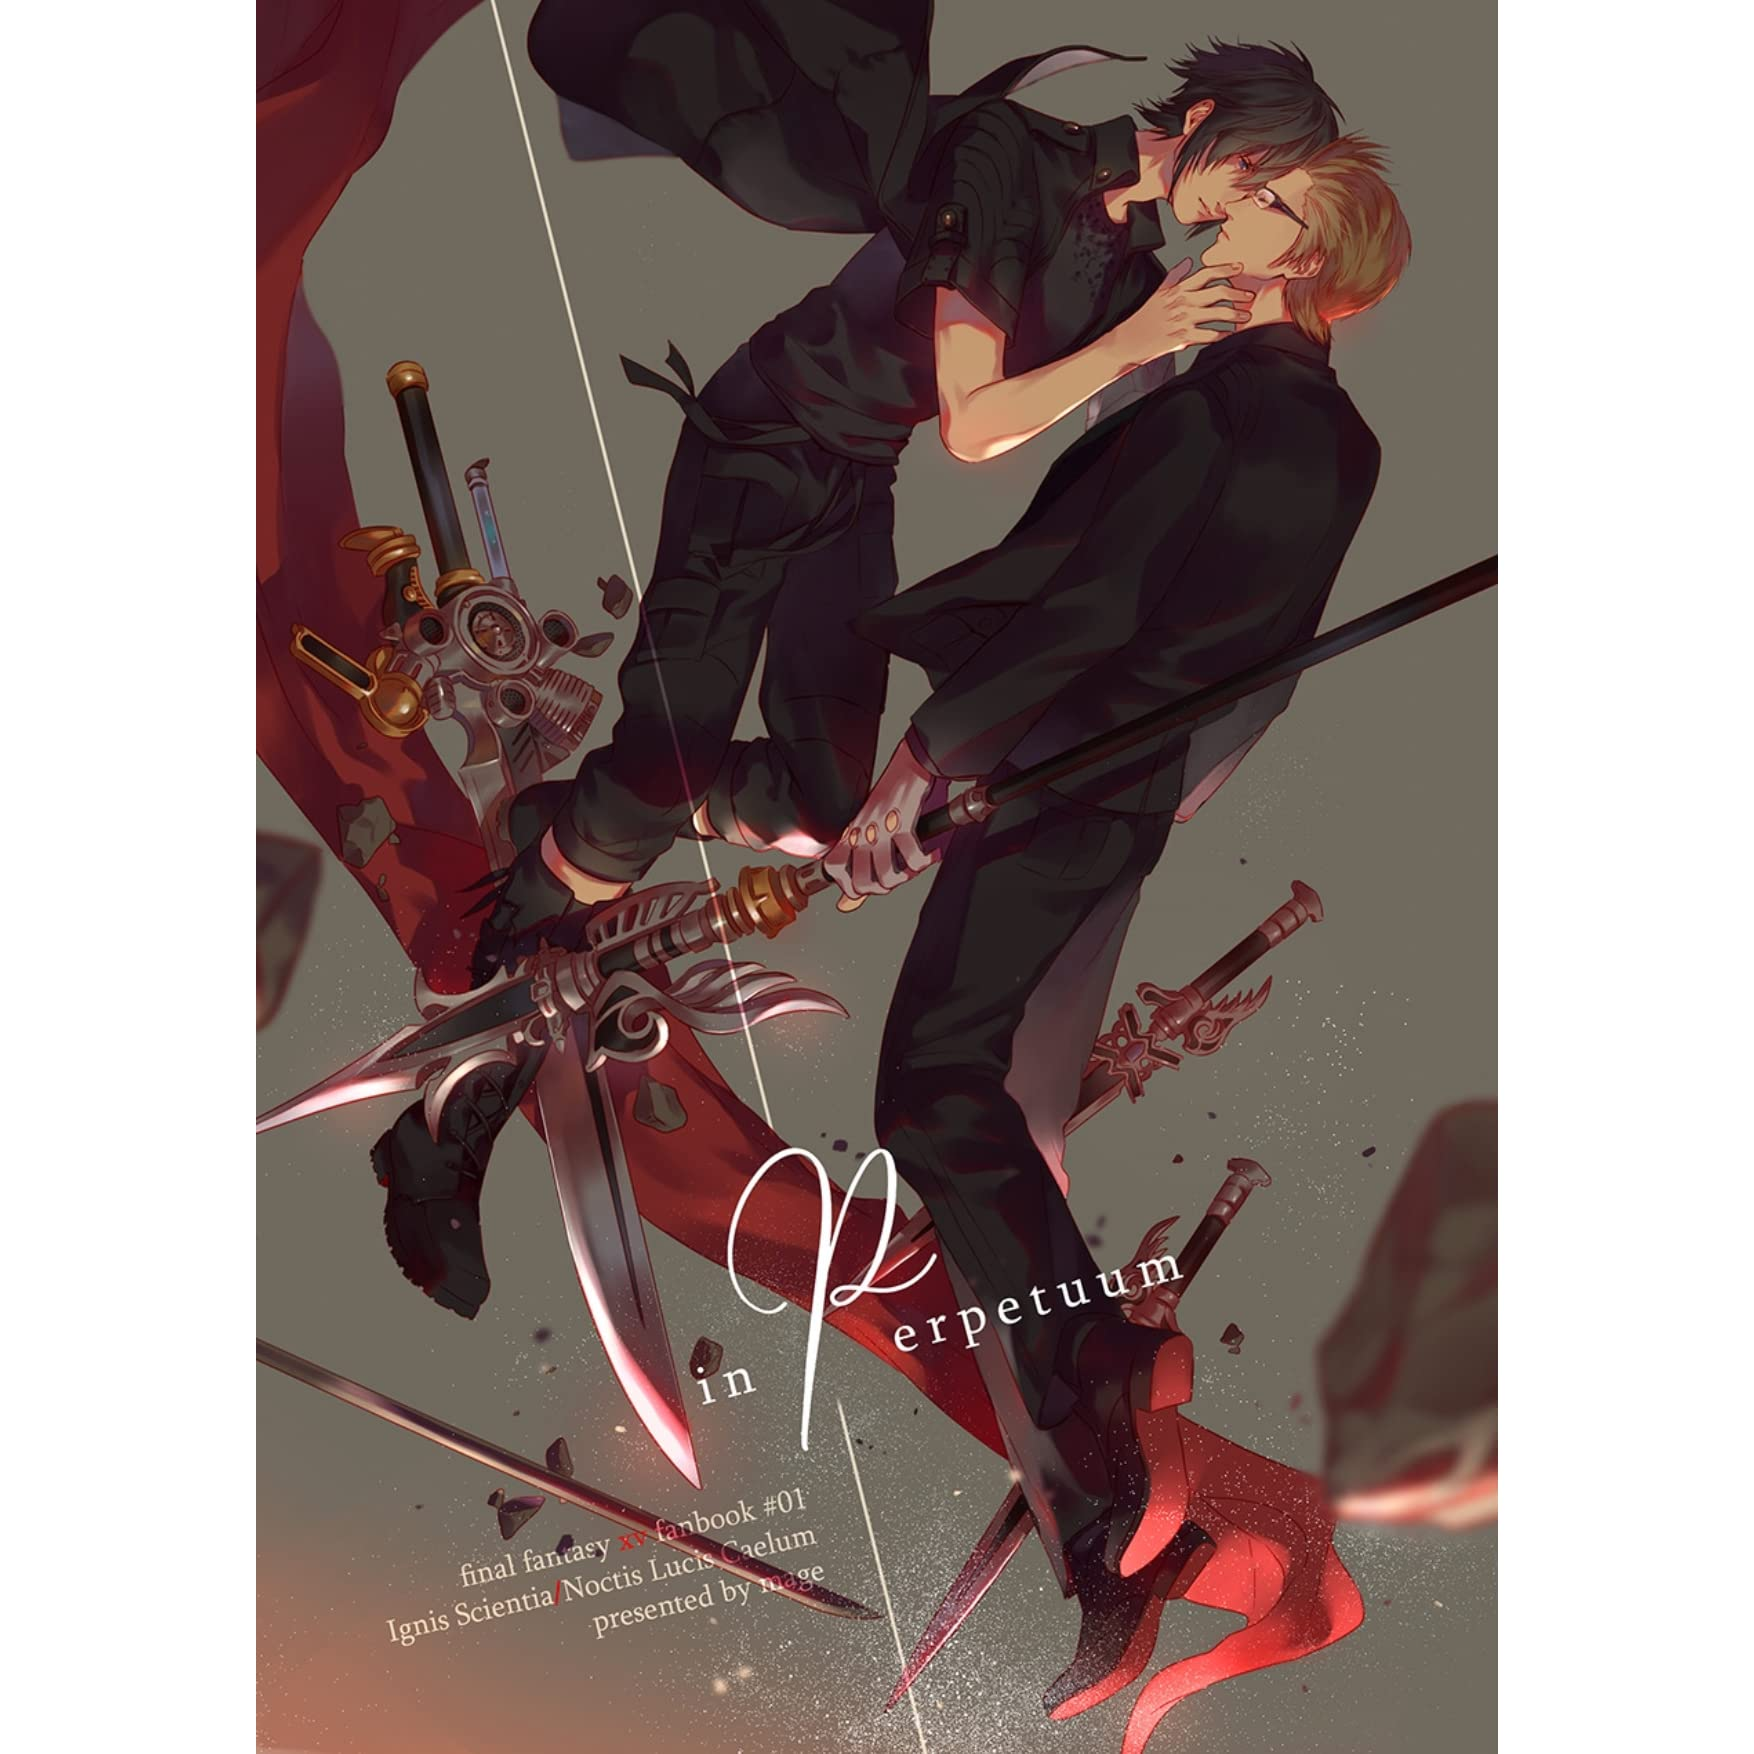 In perpetuum (FFXV - Ignis/Noctis doujinshi book #01) by Mage